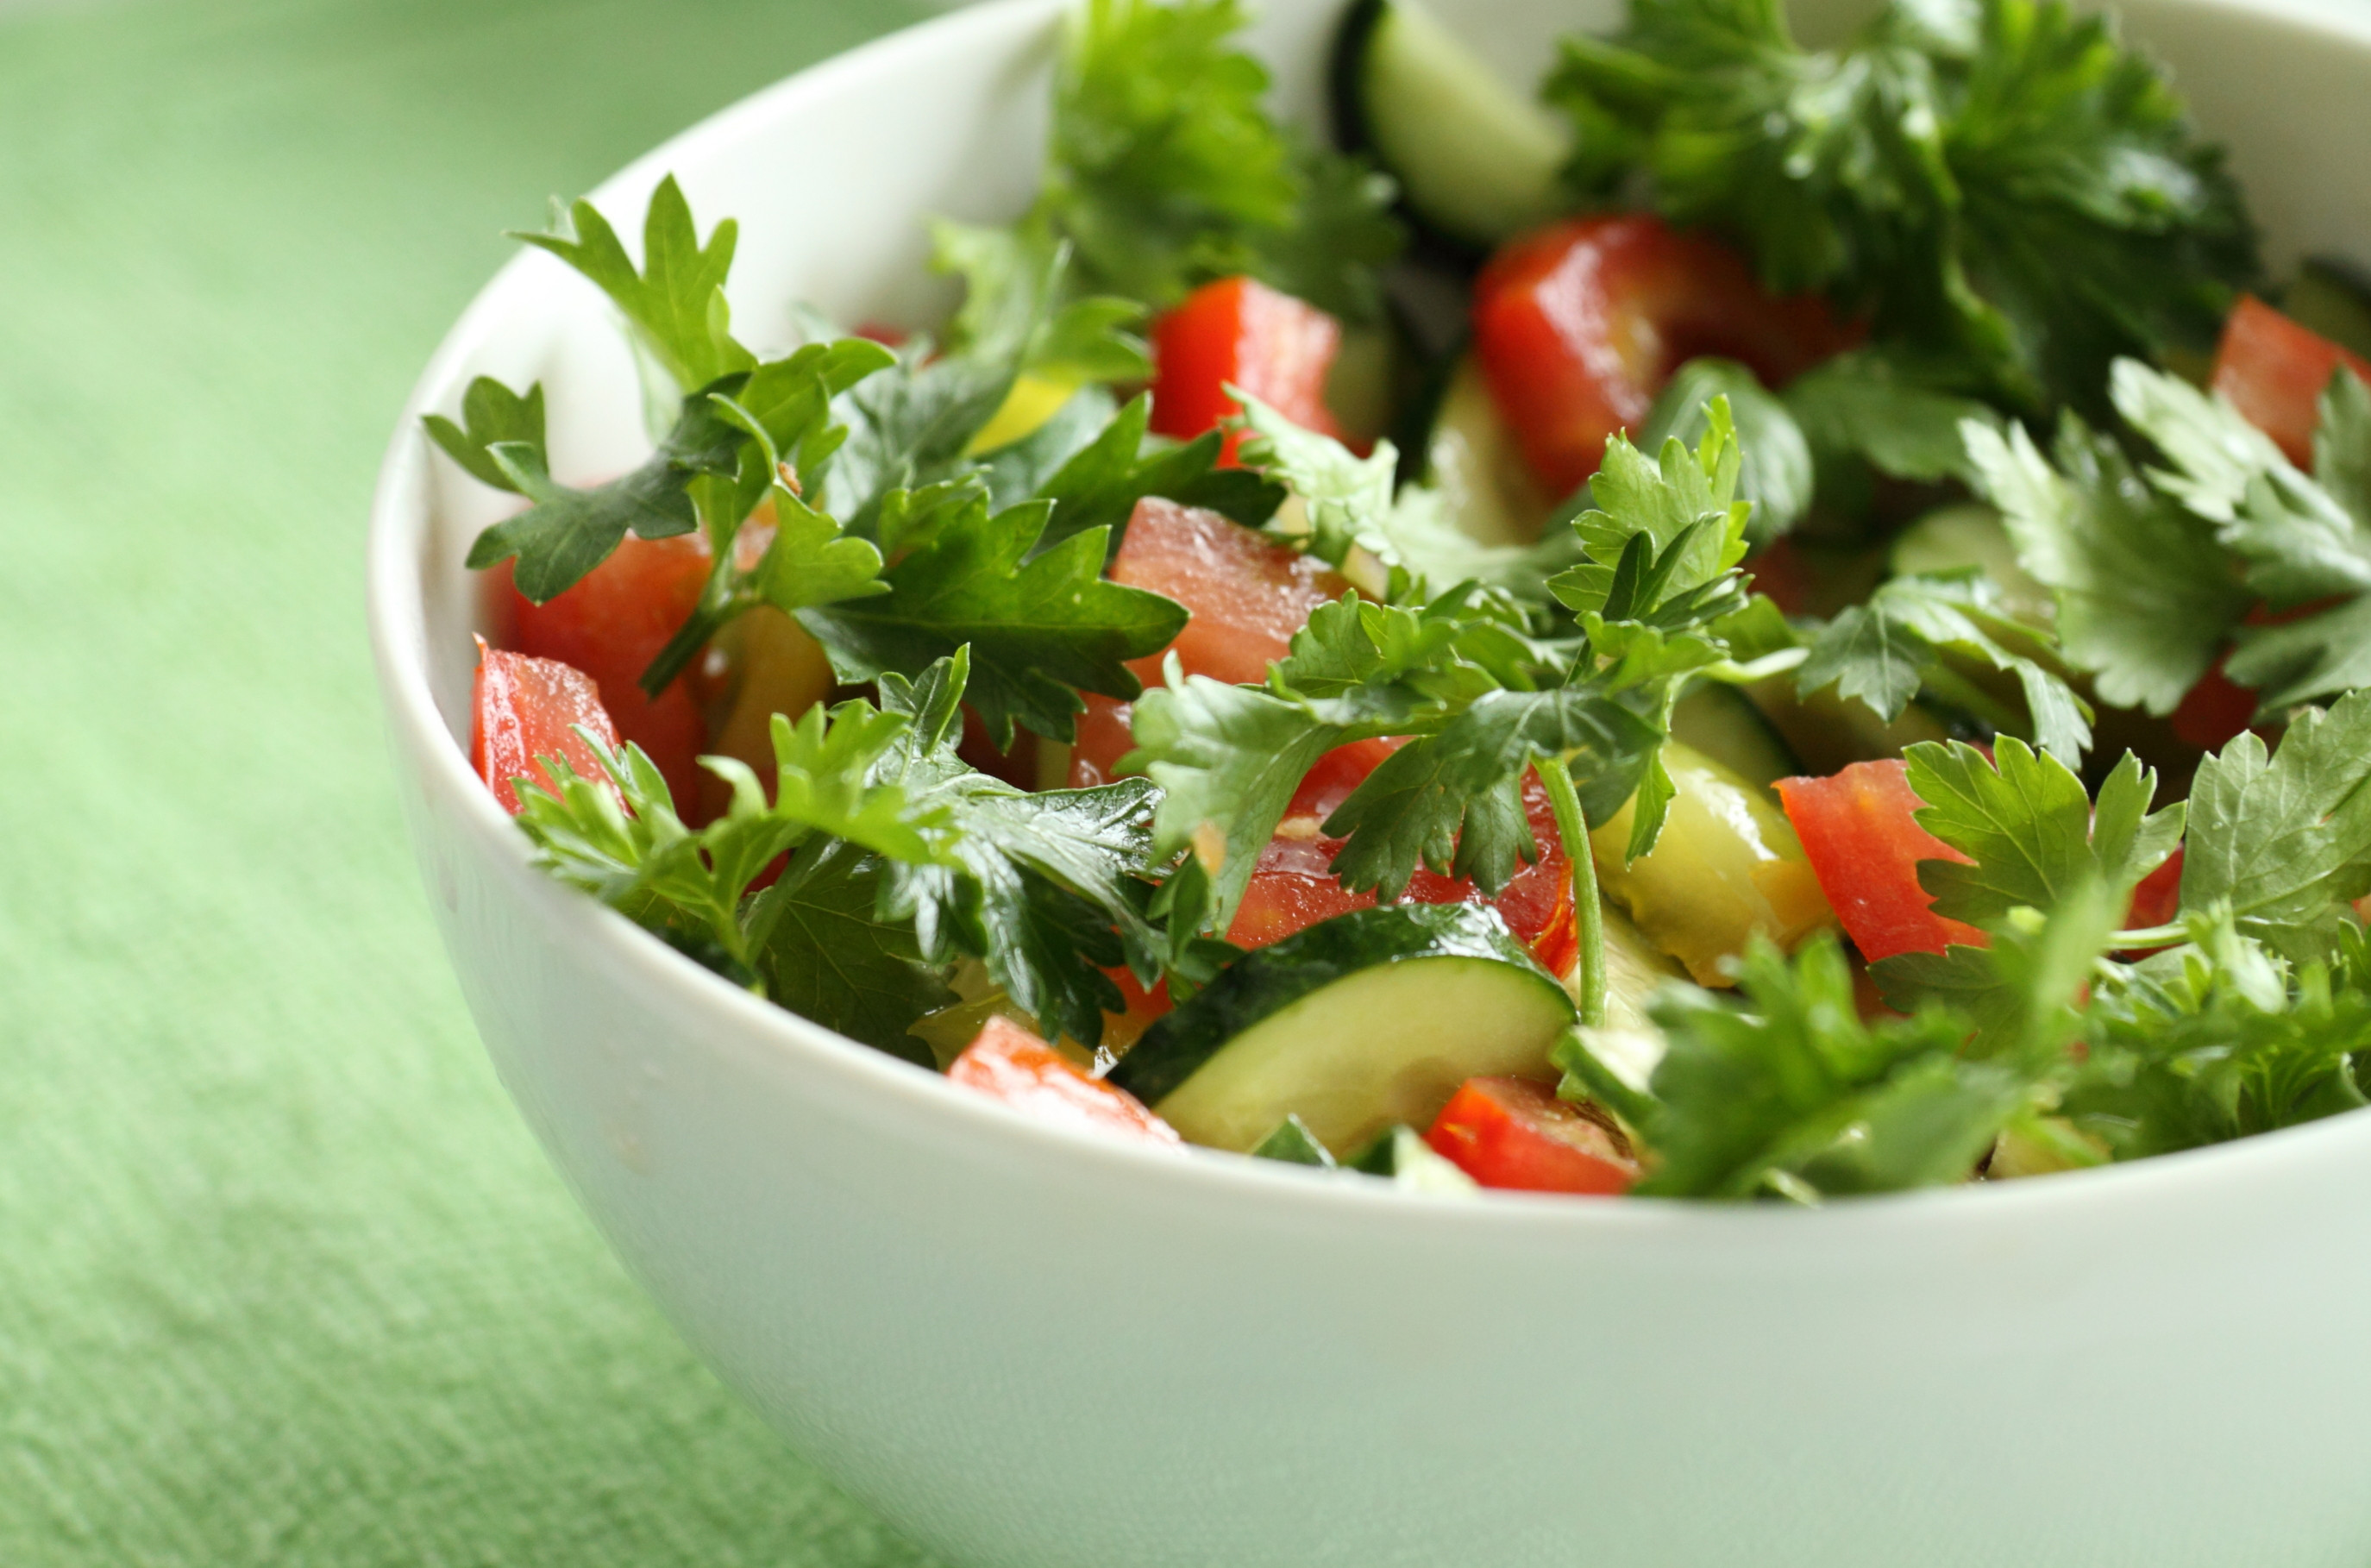 Healthy Light Lunches  How a Light Lunch Could Help You Lose Weight